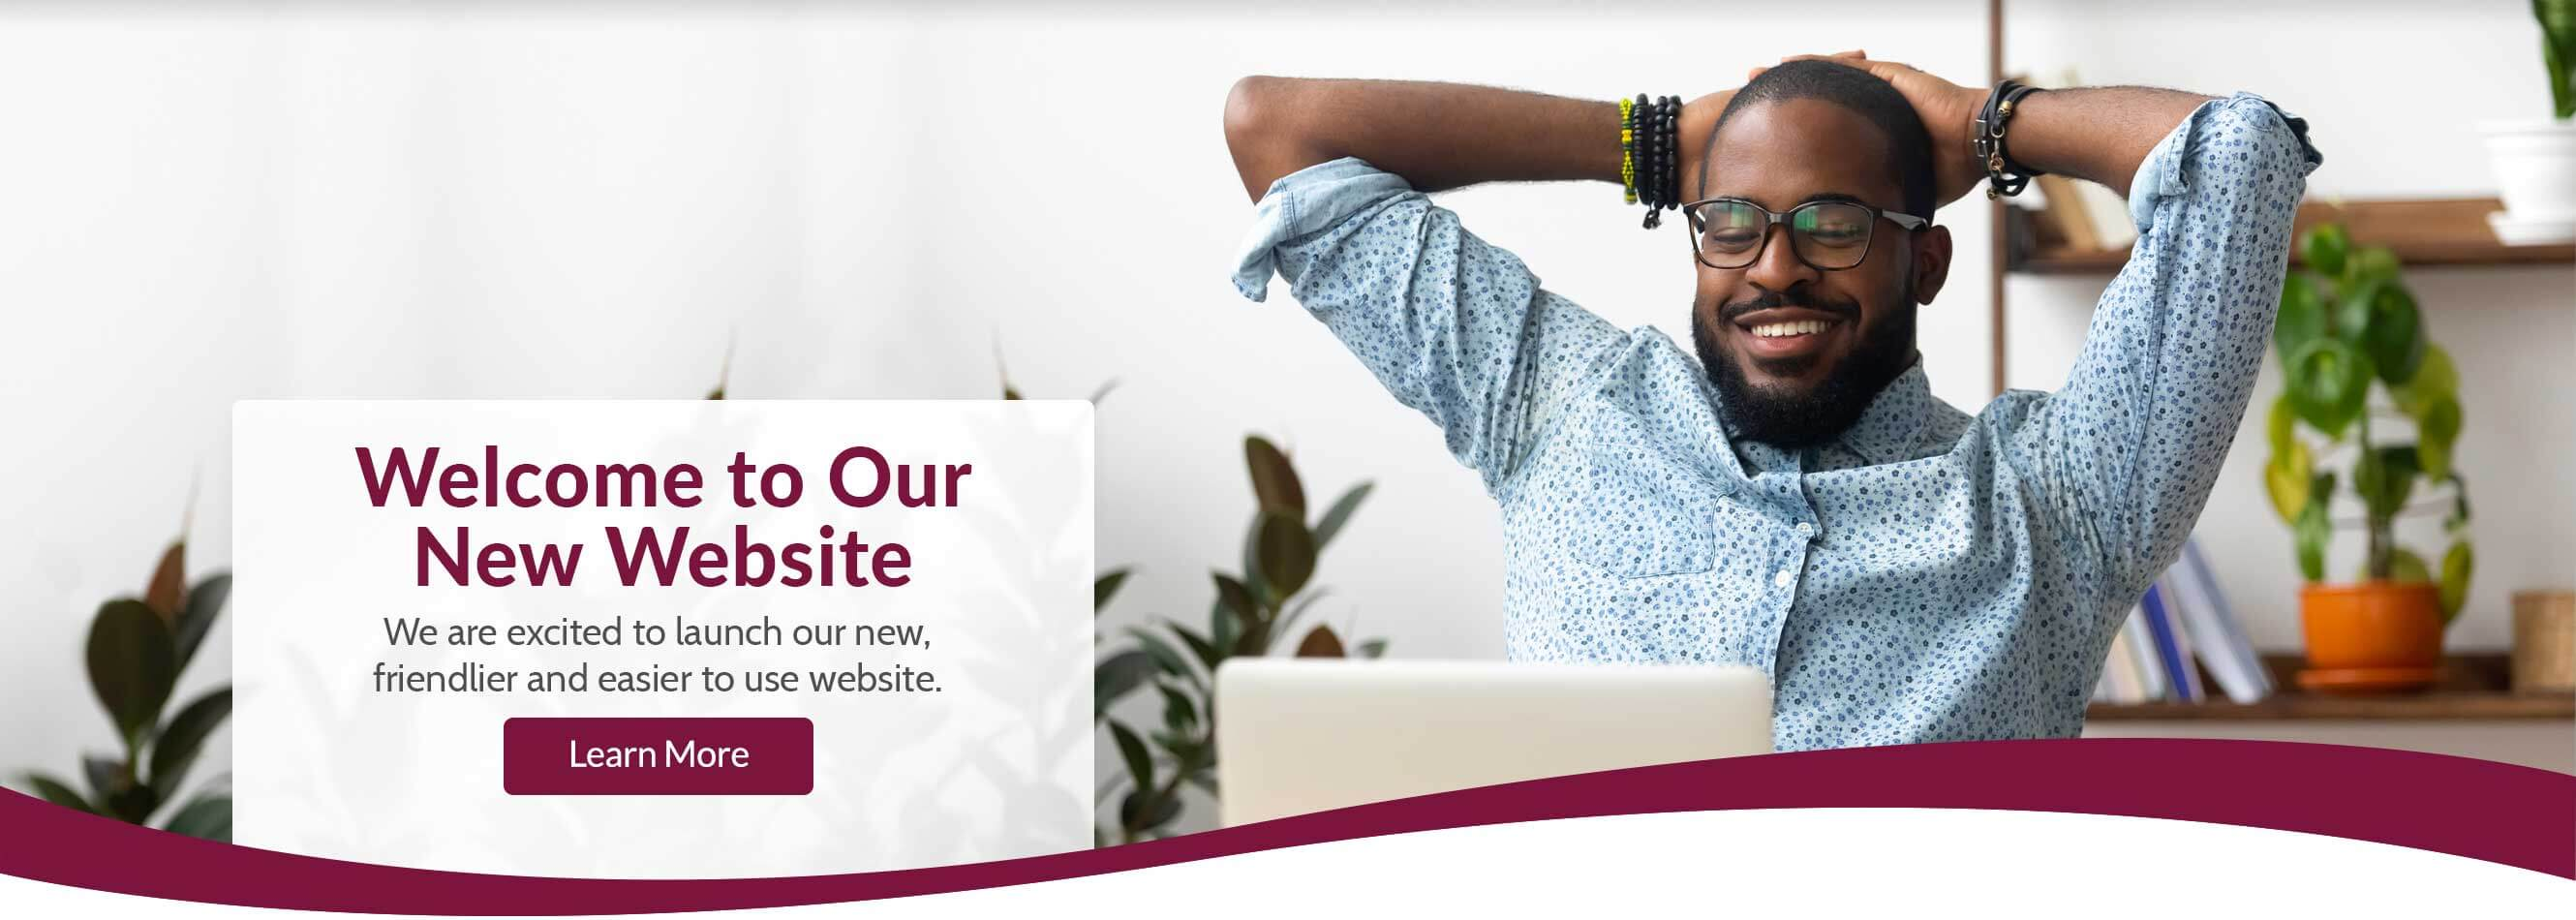 Welcome to Our New Website We are excited to launch our new, friendlier and easier to use website. Learn More